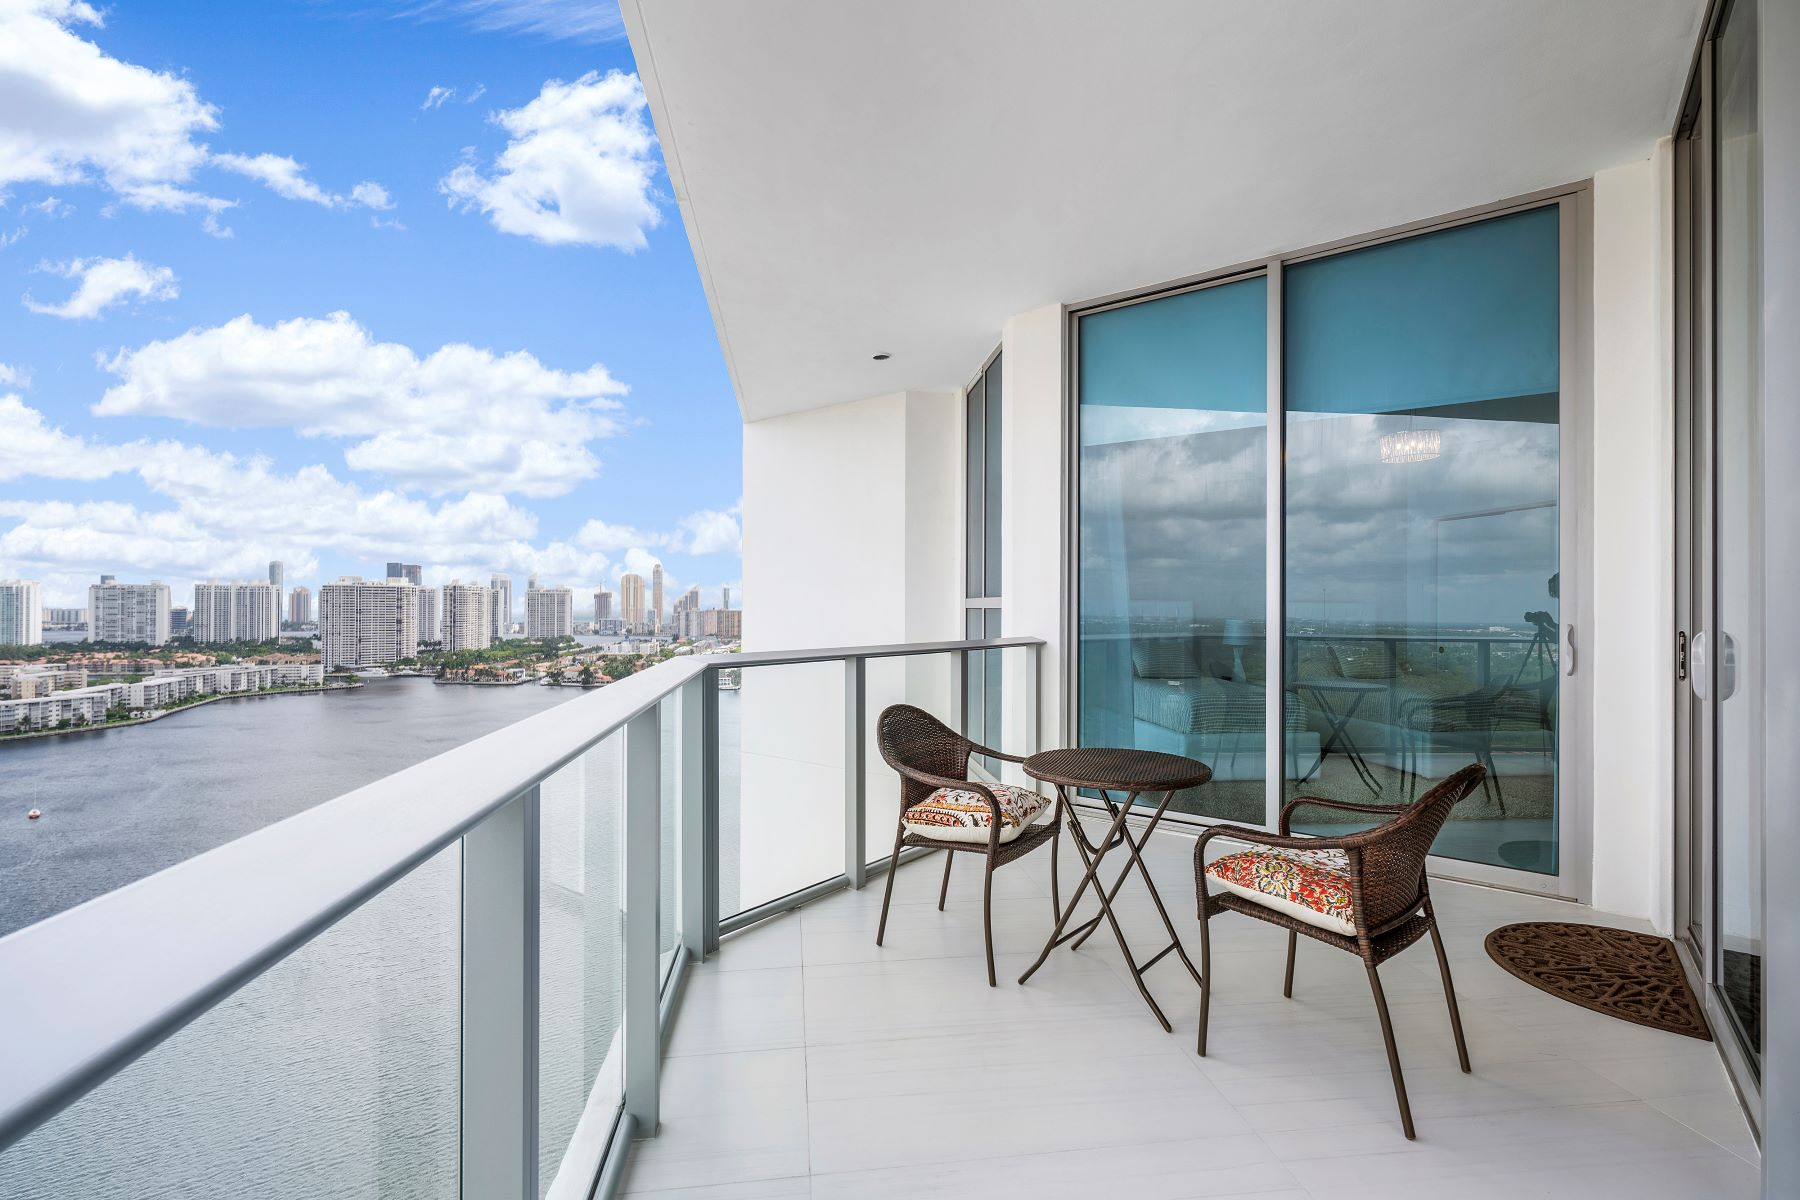 Condominiums for Sale at 17111 Biscayne Blvd LPH7 North Miami Beach, Florida 33179 United States